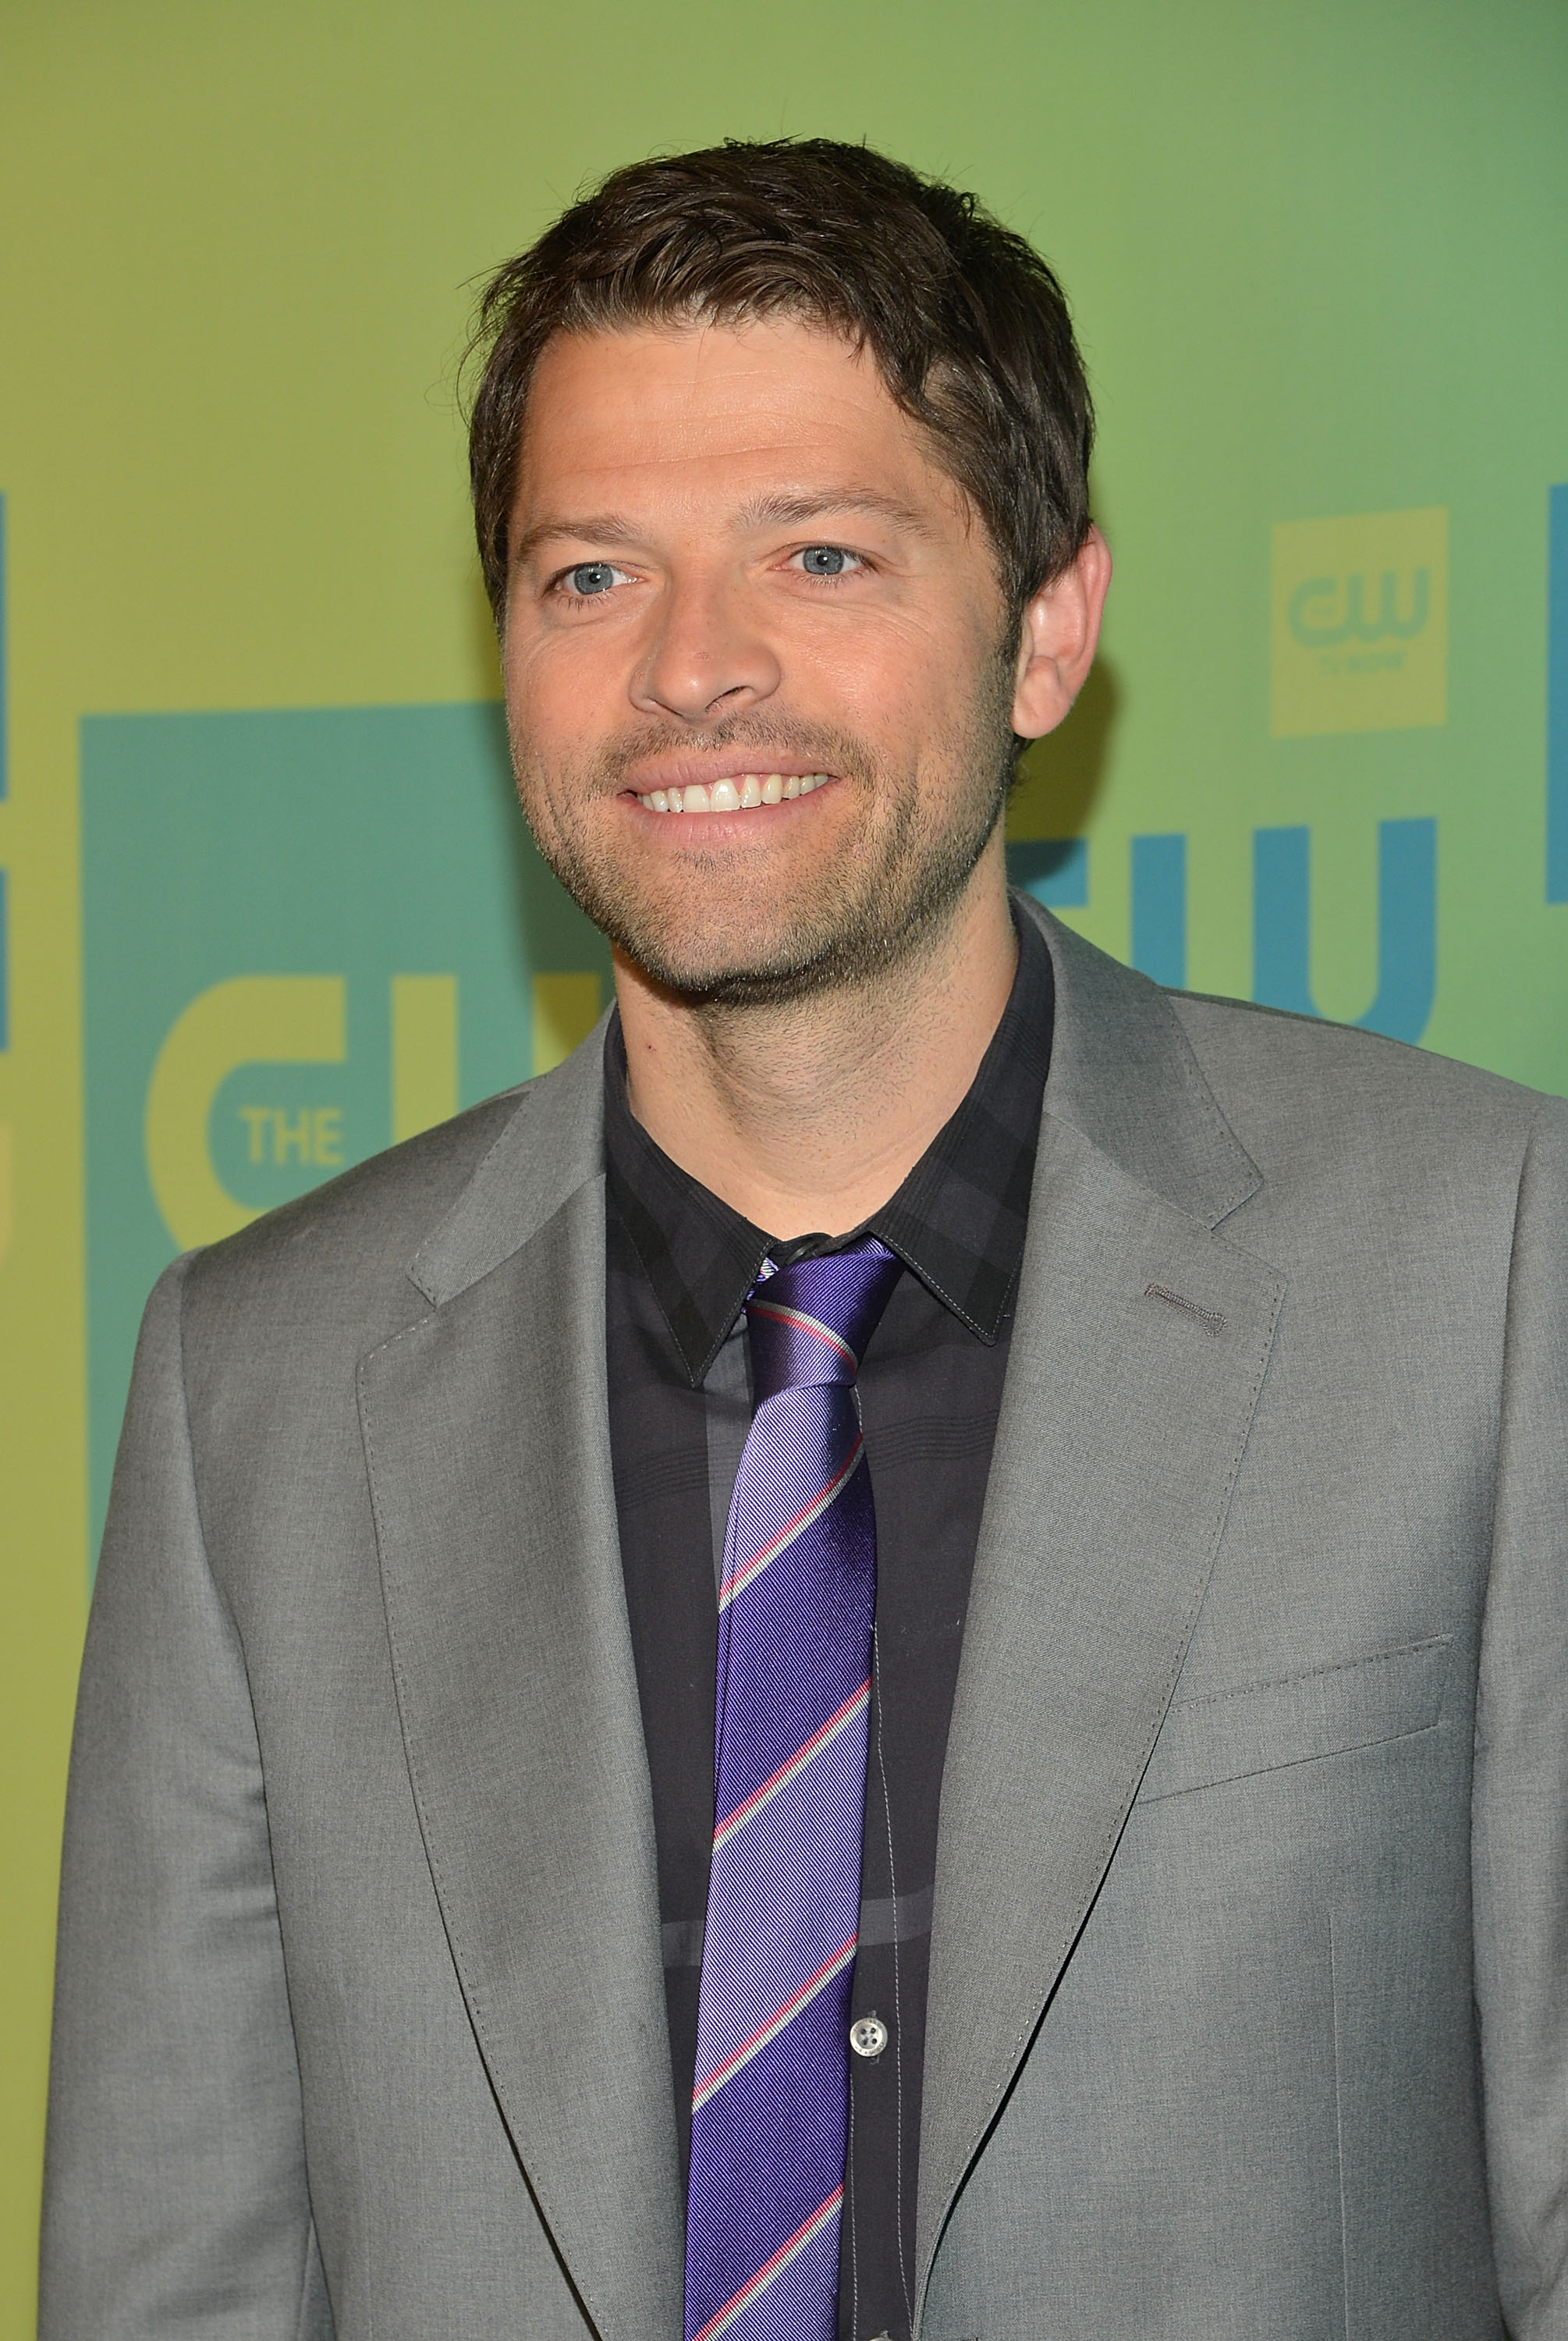 Guys, can anyone know where Misha Collins learned to speak in Russian